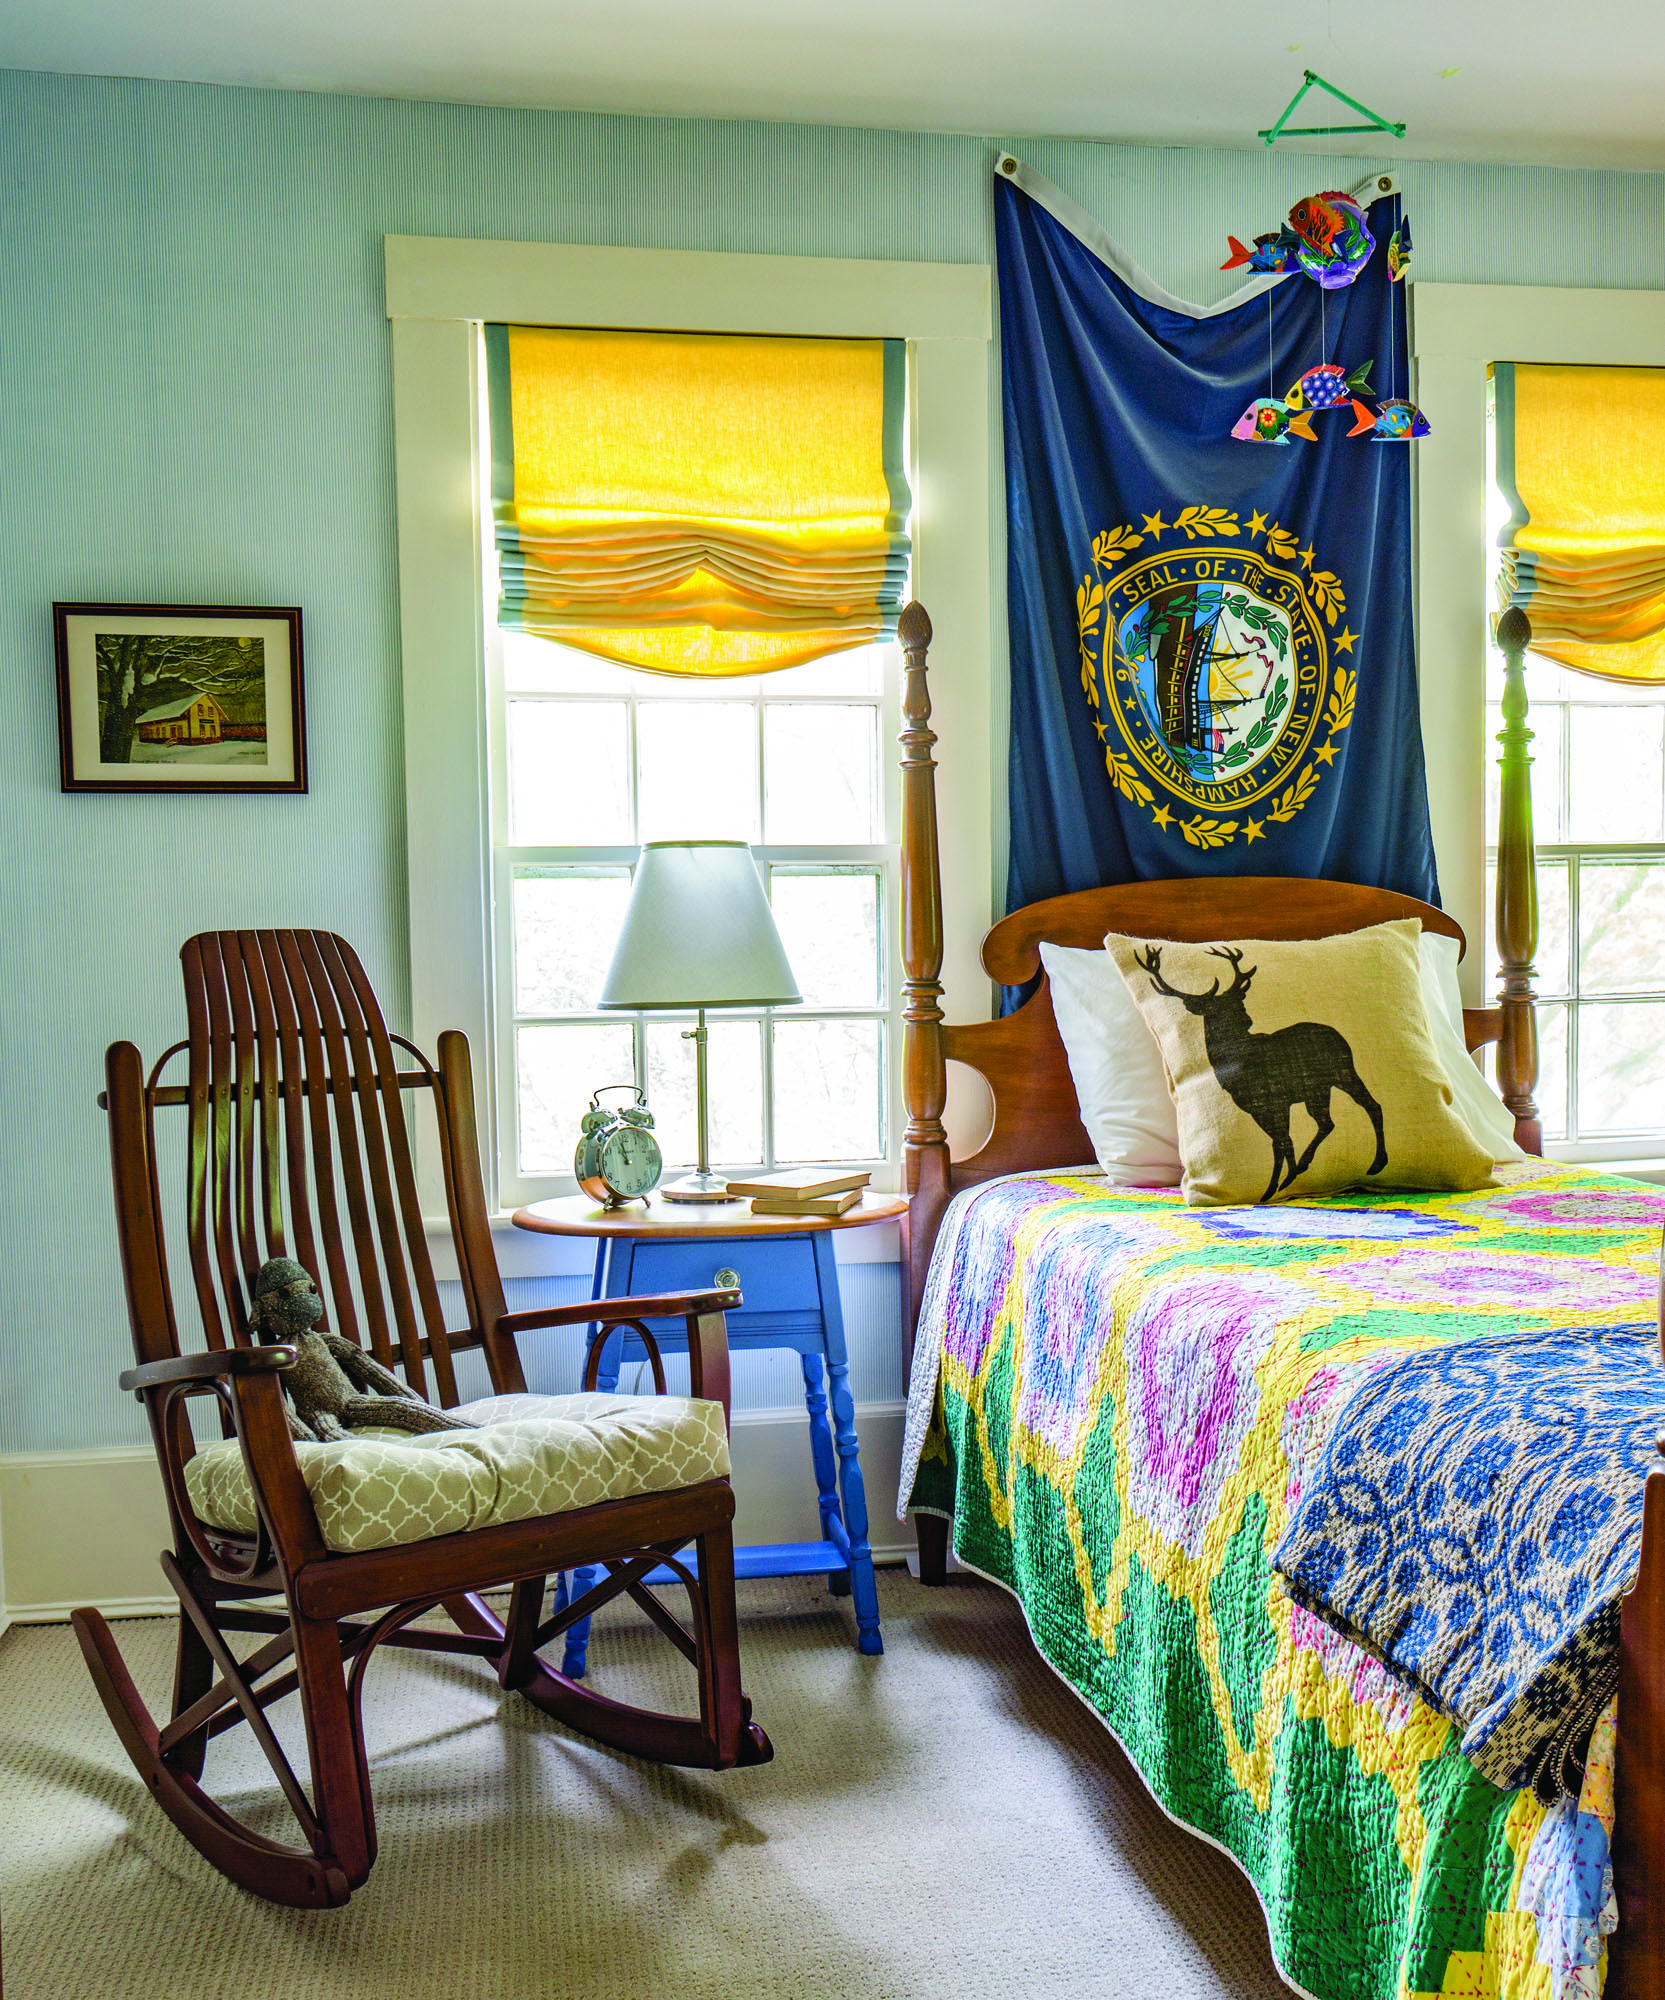 New Hampshire state flag softens the wall  behind the bed. The vintage rocker adds a rustic note.